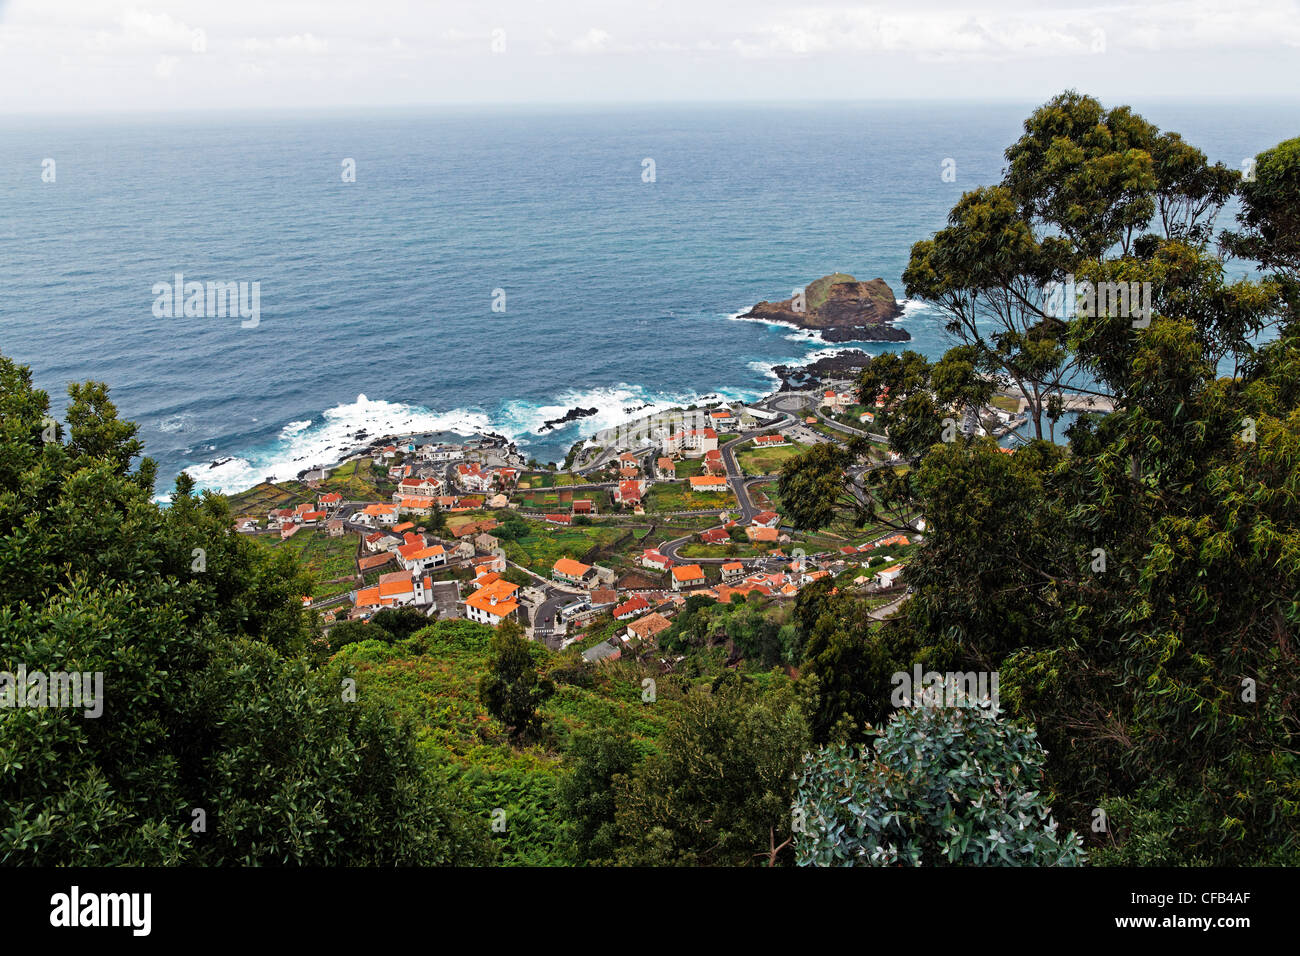 Europe, Portugal, Republica Portuguesa, Madeira, Porto Moniz, street, Porto Moniz, plants, trees, mountains, islands, - Stock Image